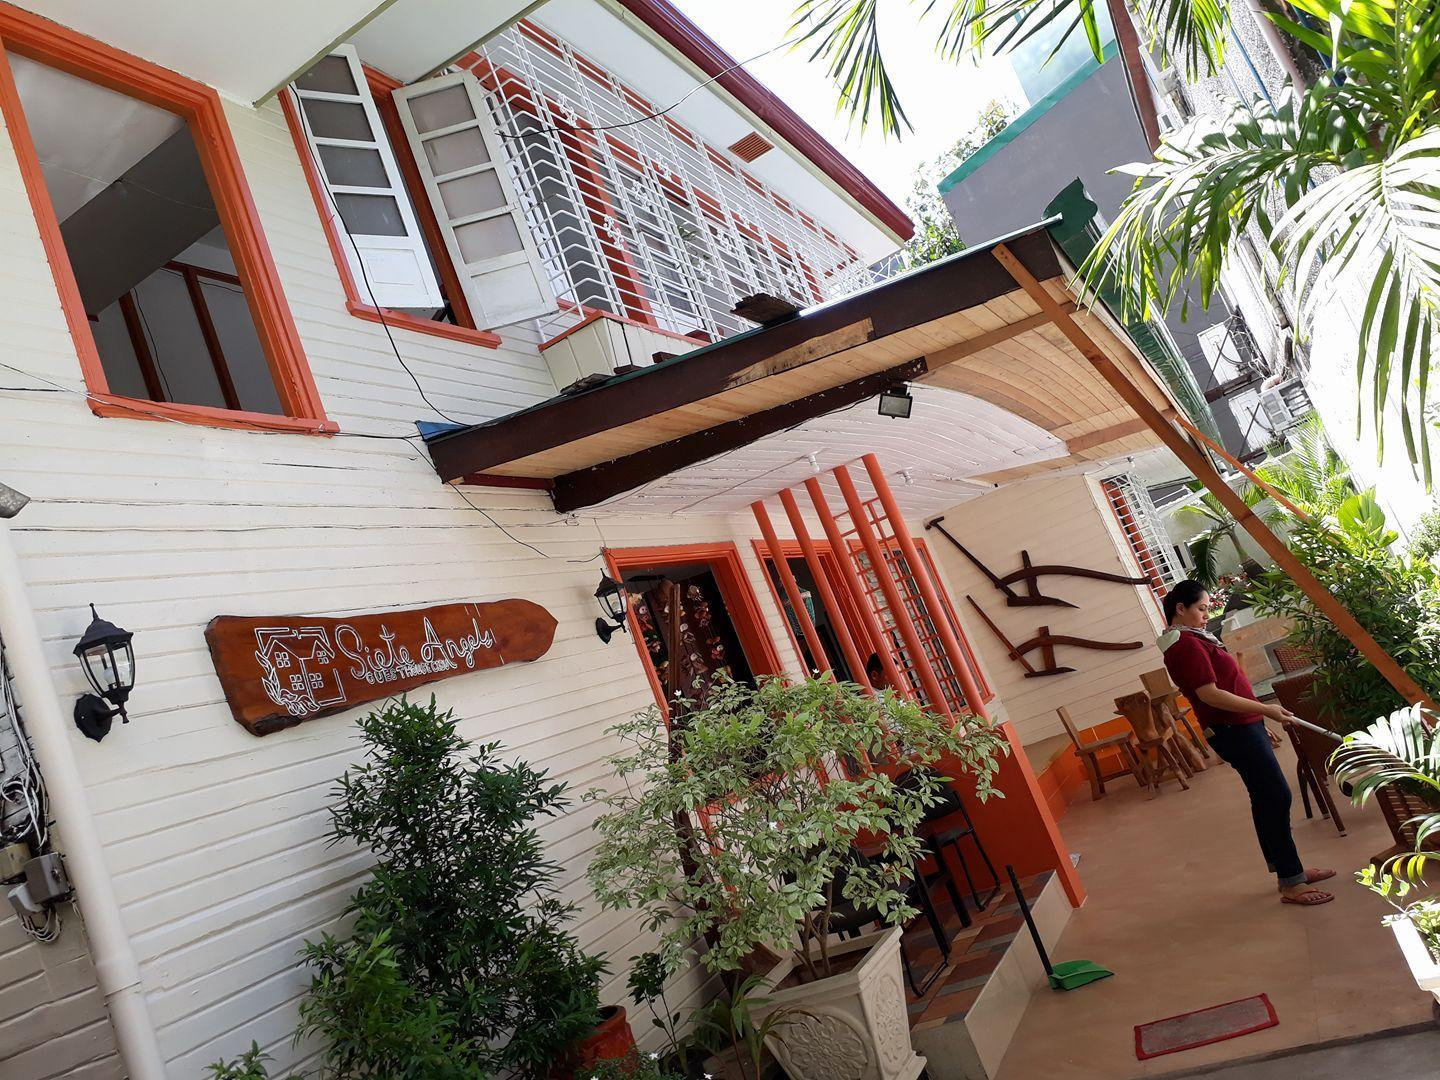 Siete Angels Guesthouse